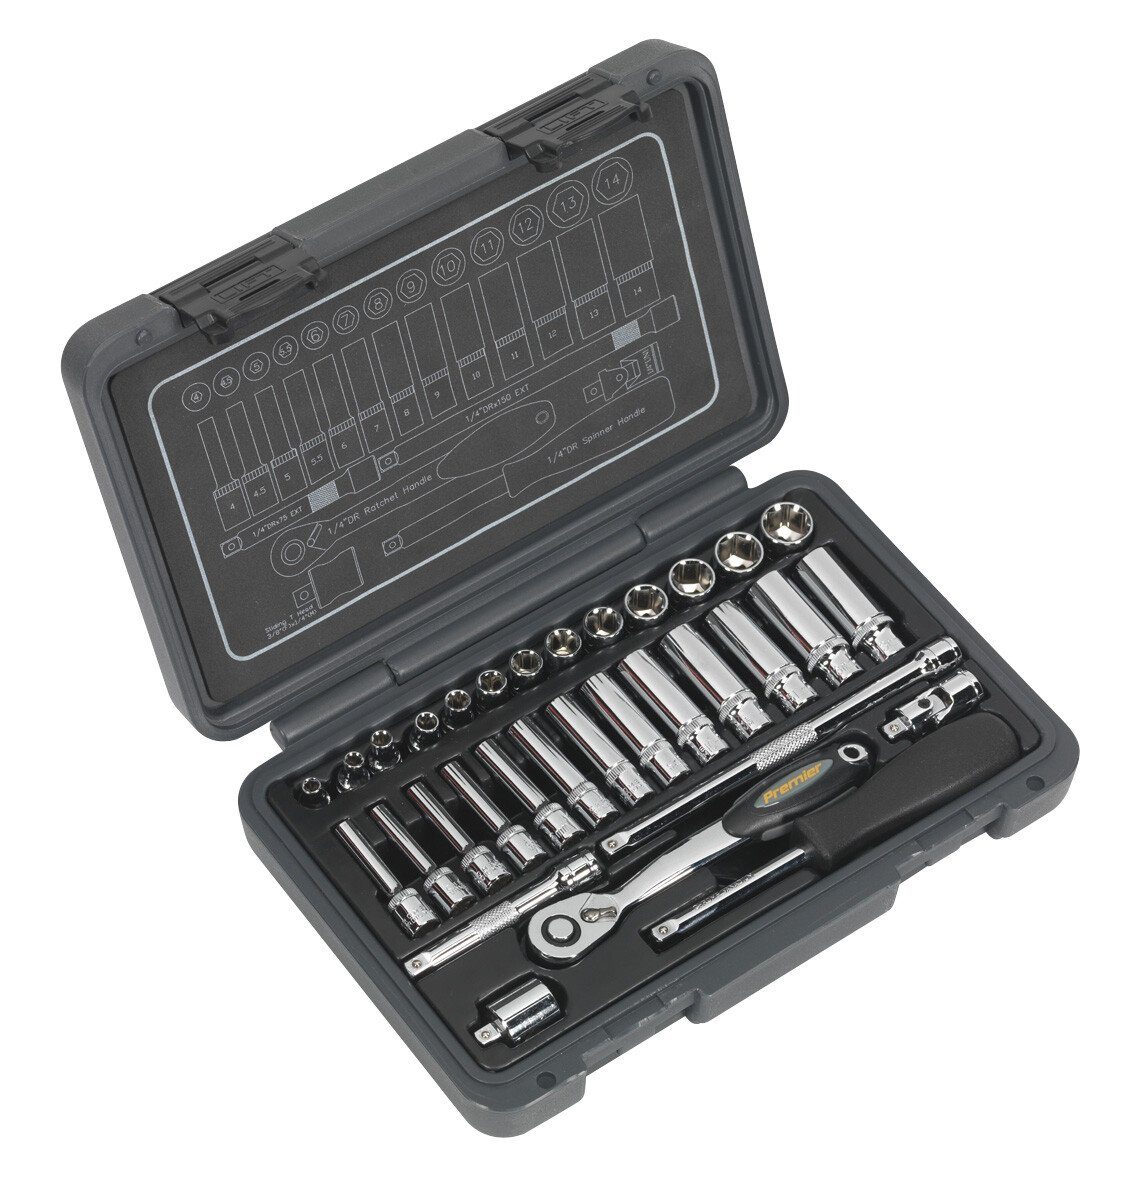 "Sealey AK7950 Socket Set 32 Piece 1/4"" Drive 6pt WallDrive Metric"